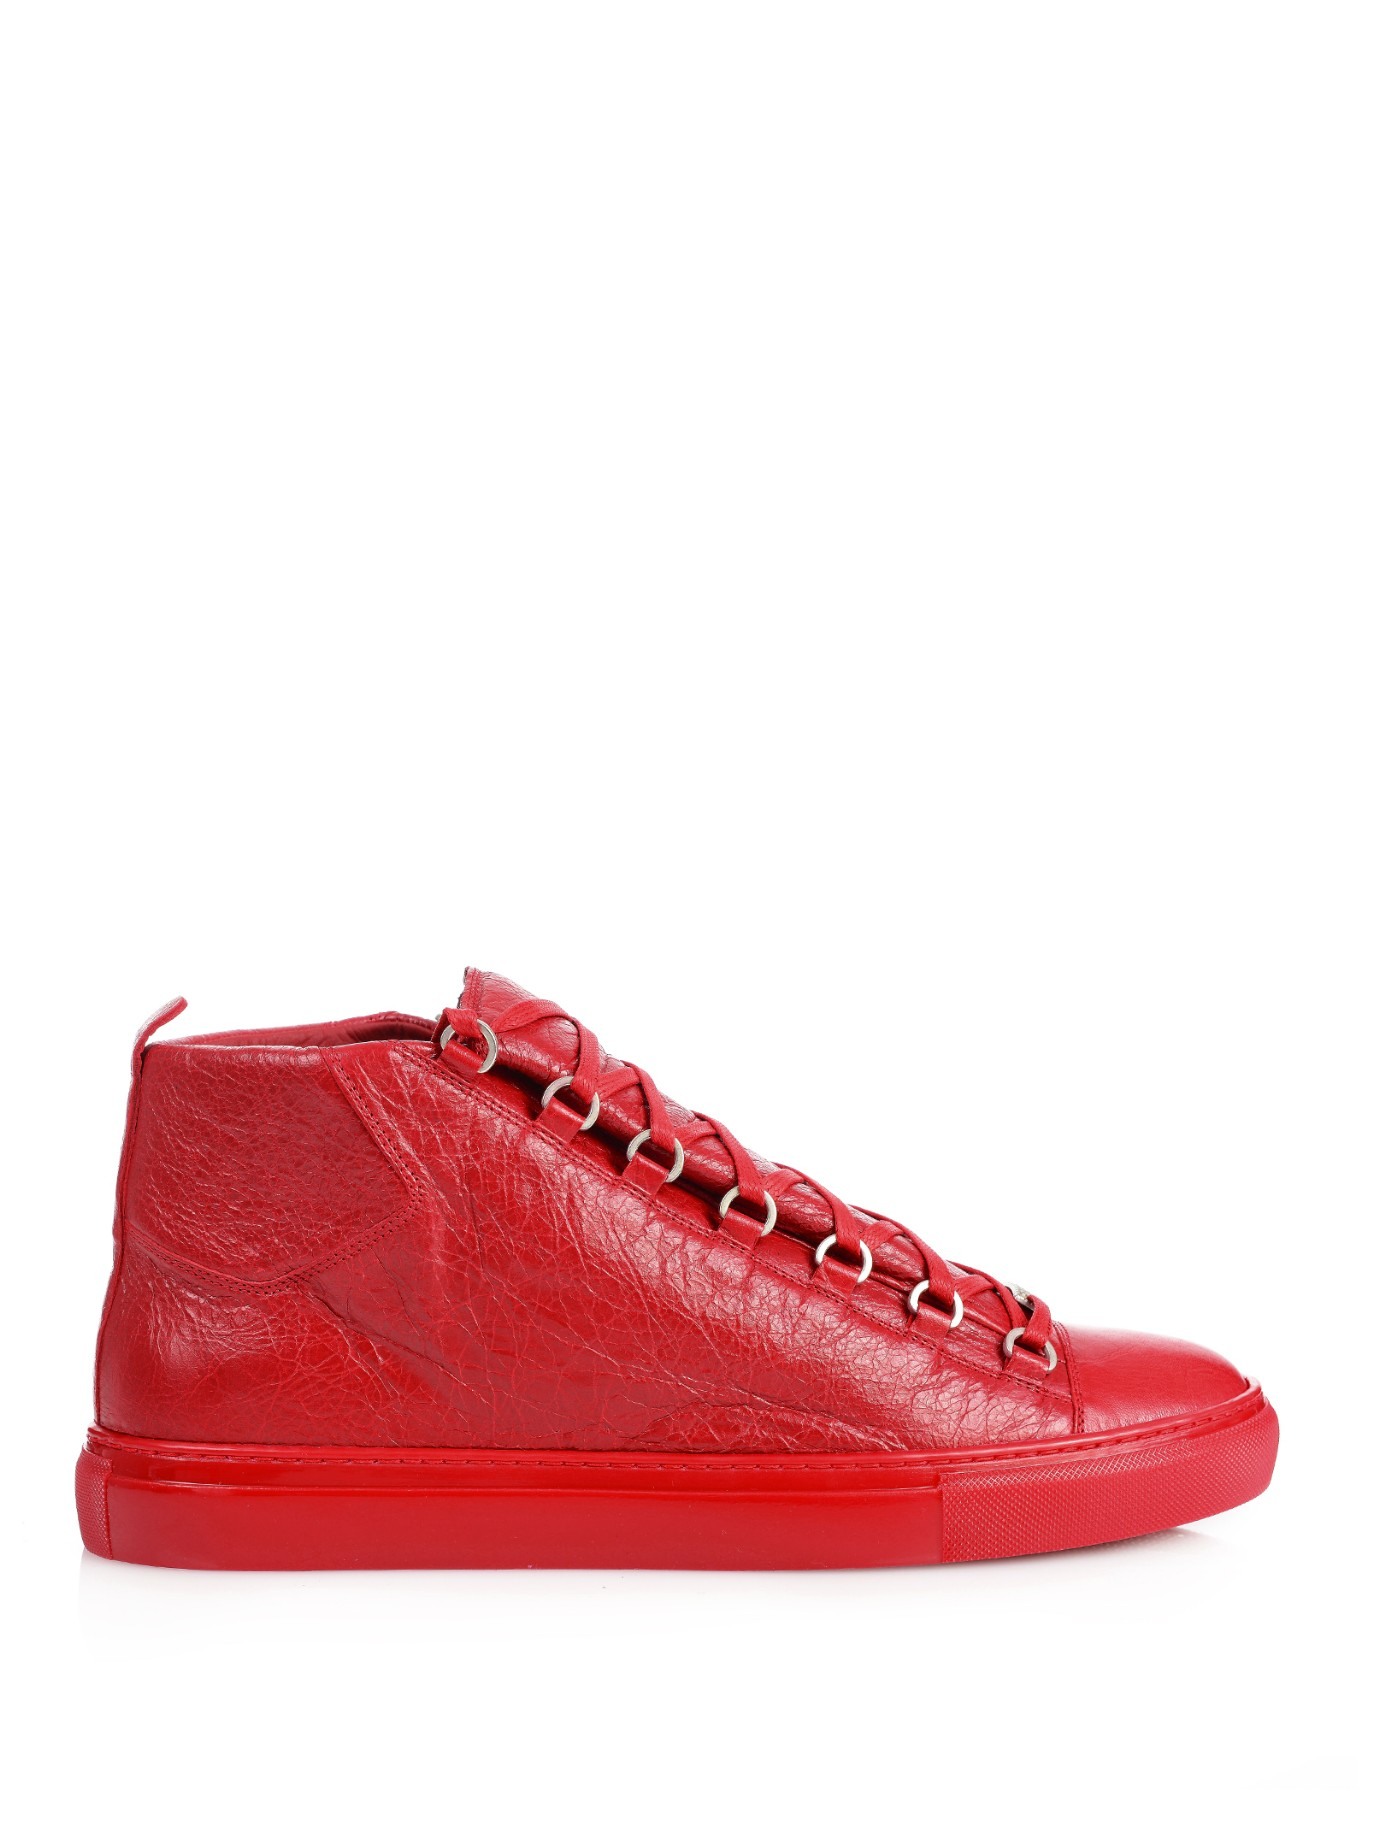 balenciaga arena hightop leather sneakers in red for men